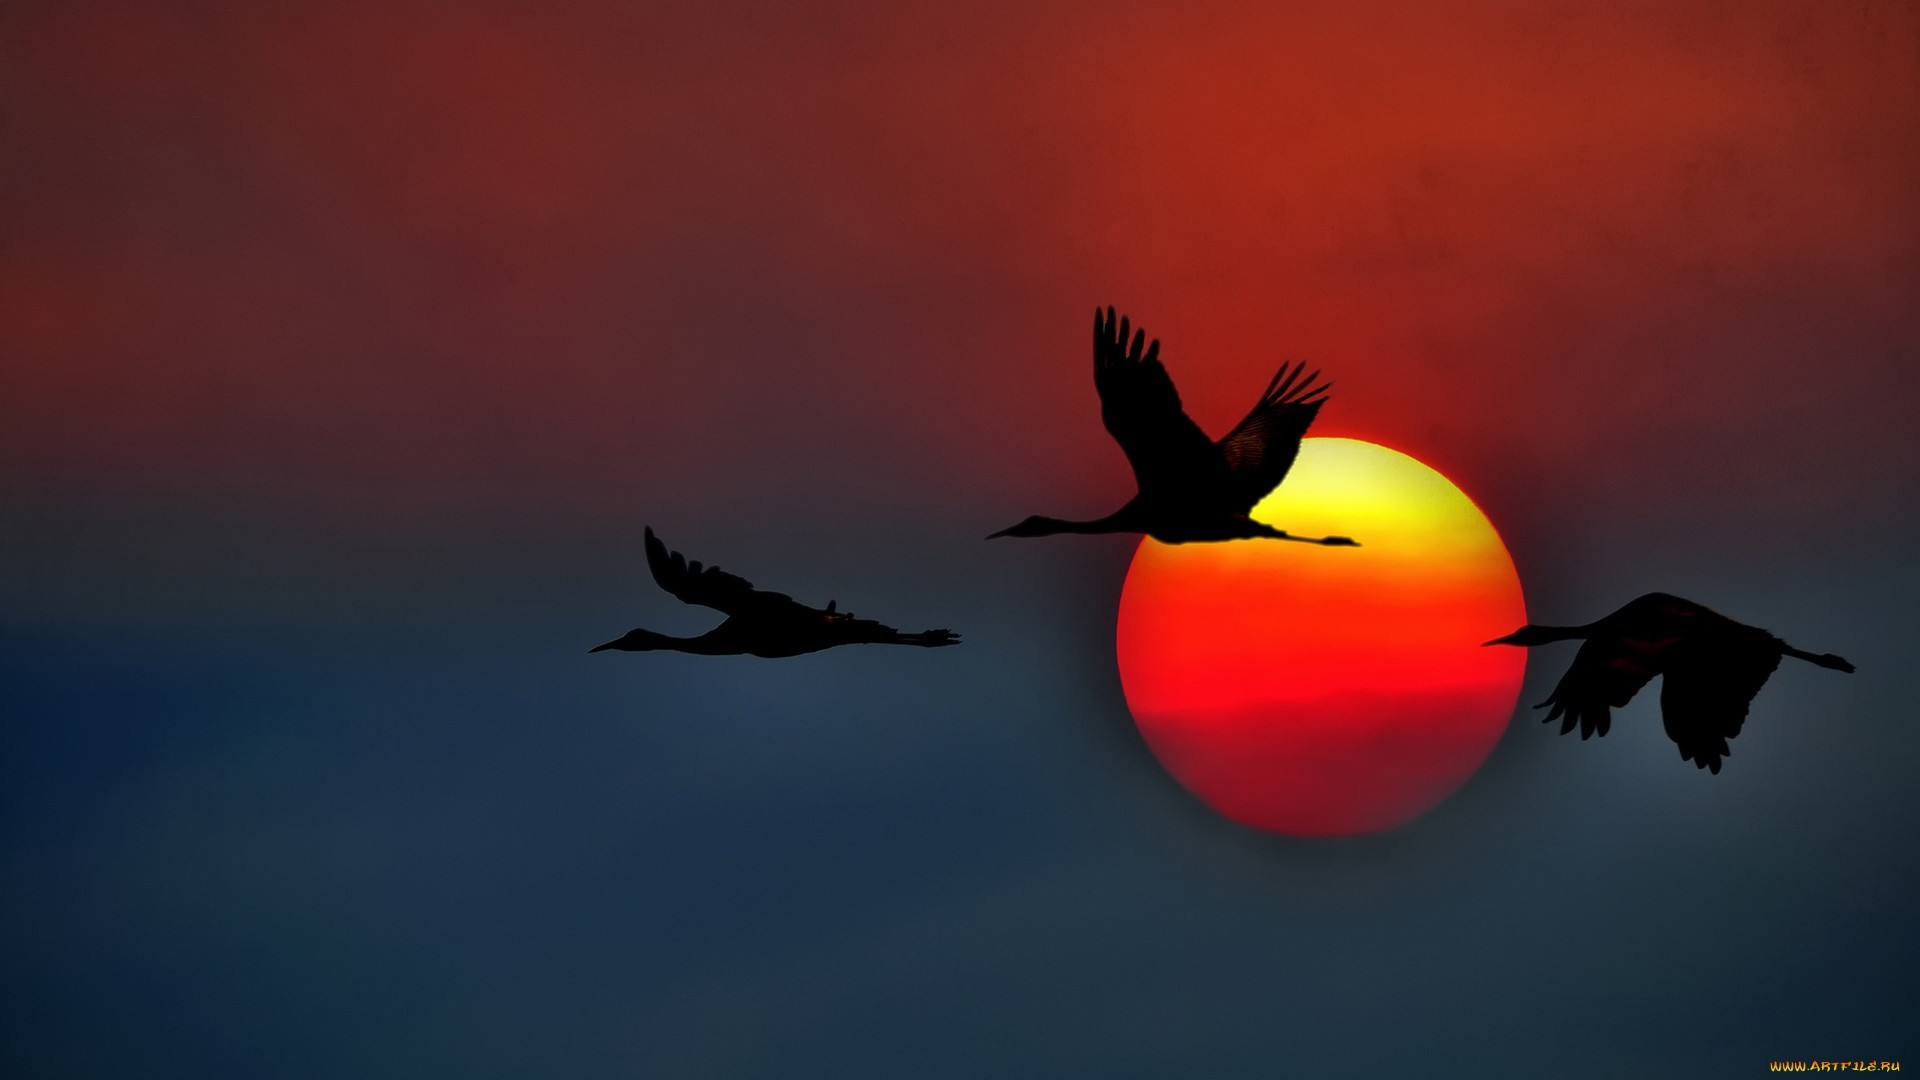 17829 download wallpaper Birds, Sunset, Background, Cranes screensavers and pictures for free